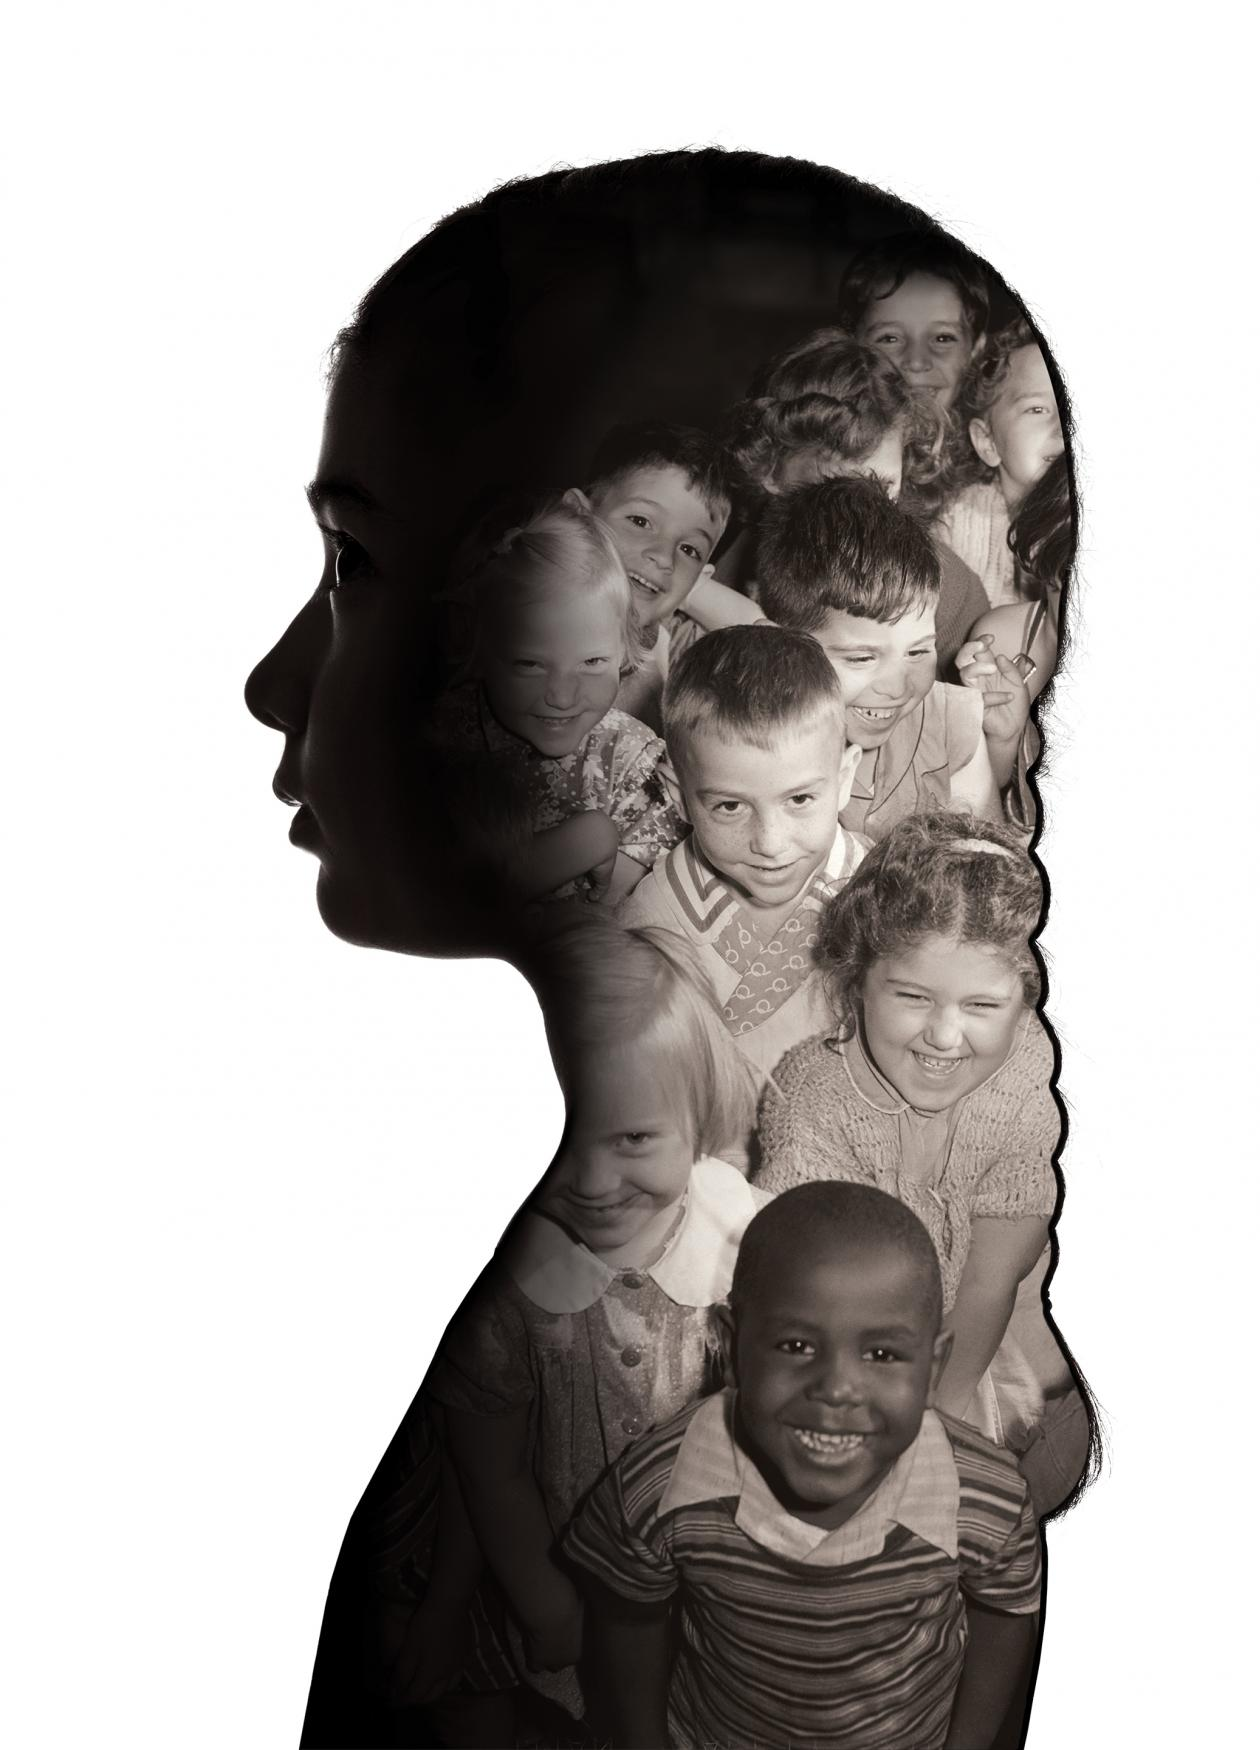 silhouette of a woman, with photos of children superimposed on top of the silhouette